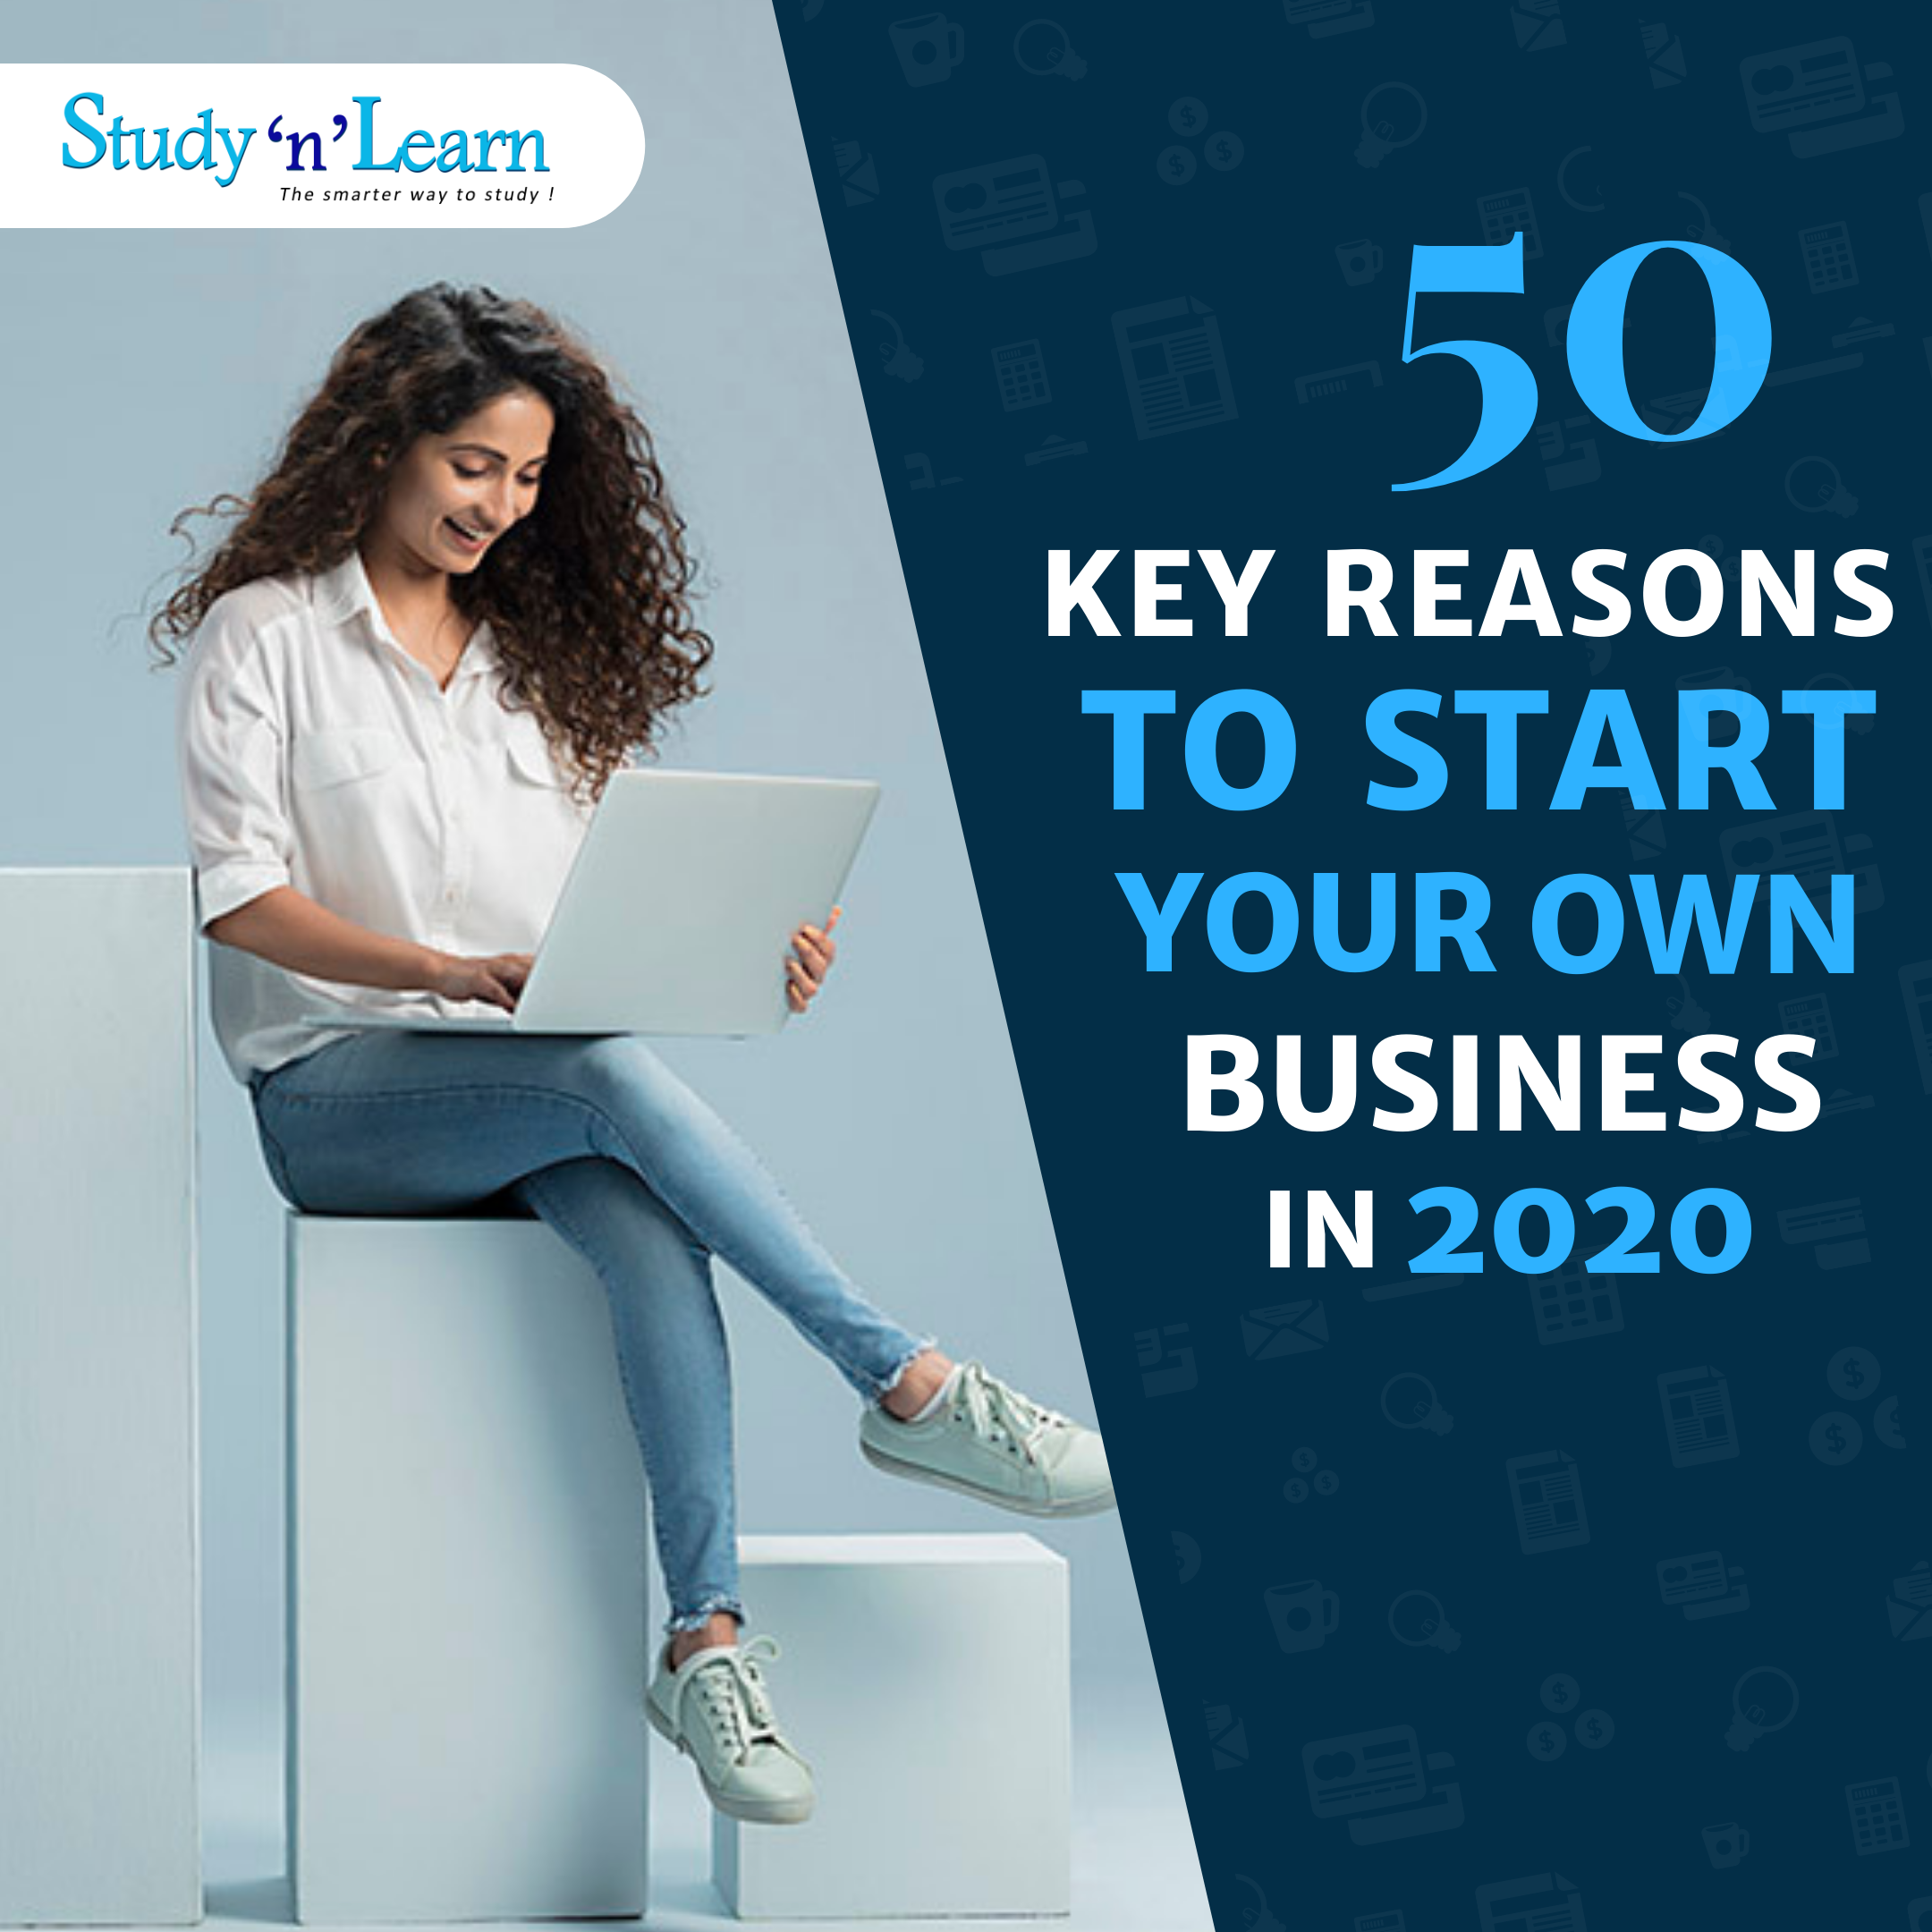 50 Key Reasons to Start Your Own Business in 2020 | Become an Entrepreneur